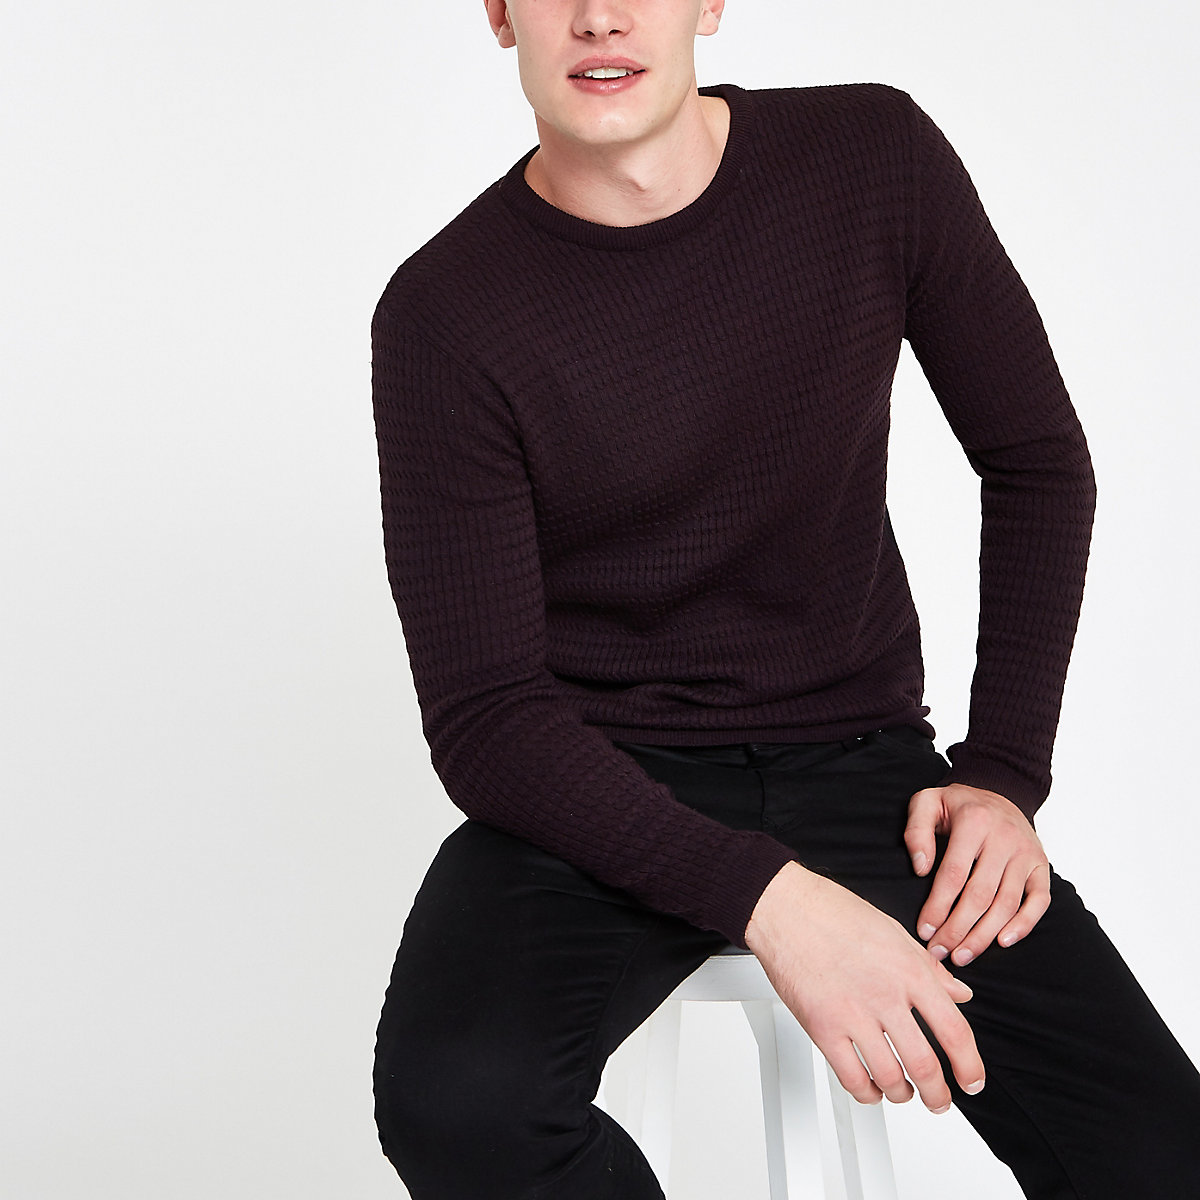 Dark purple cable knit muscle fit sweater